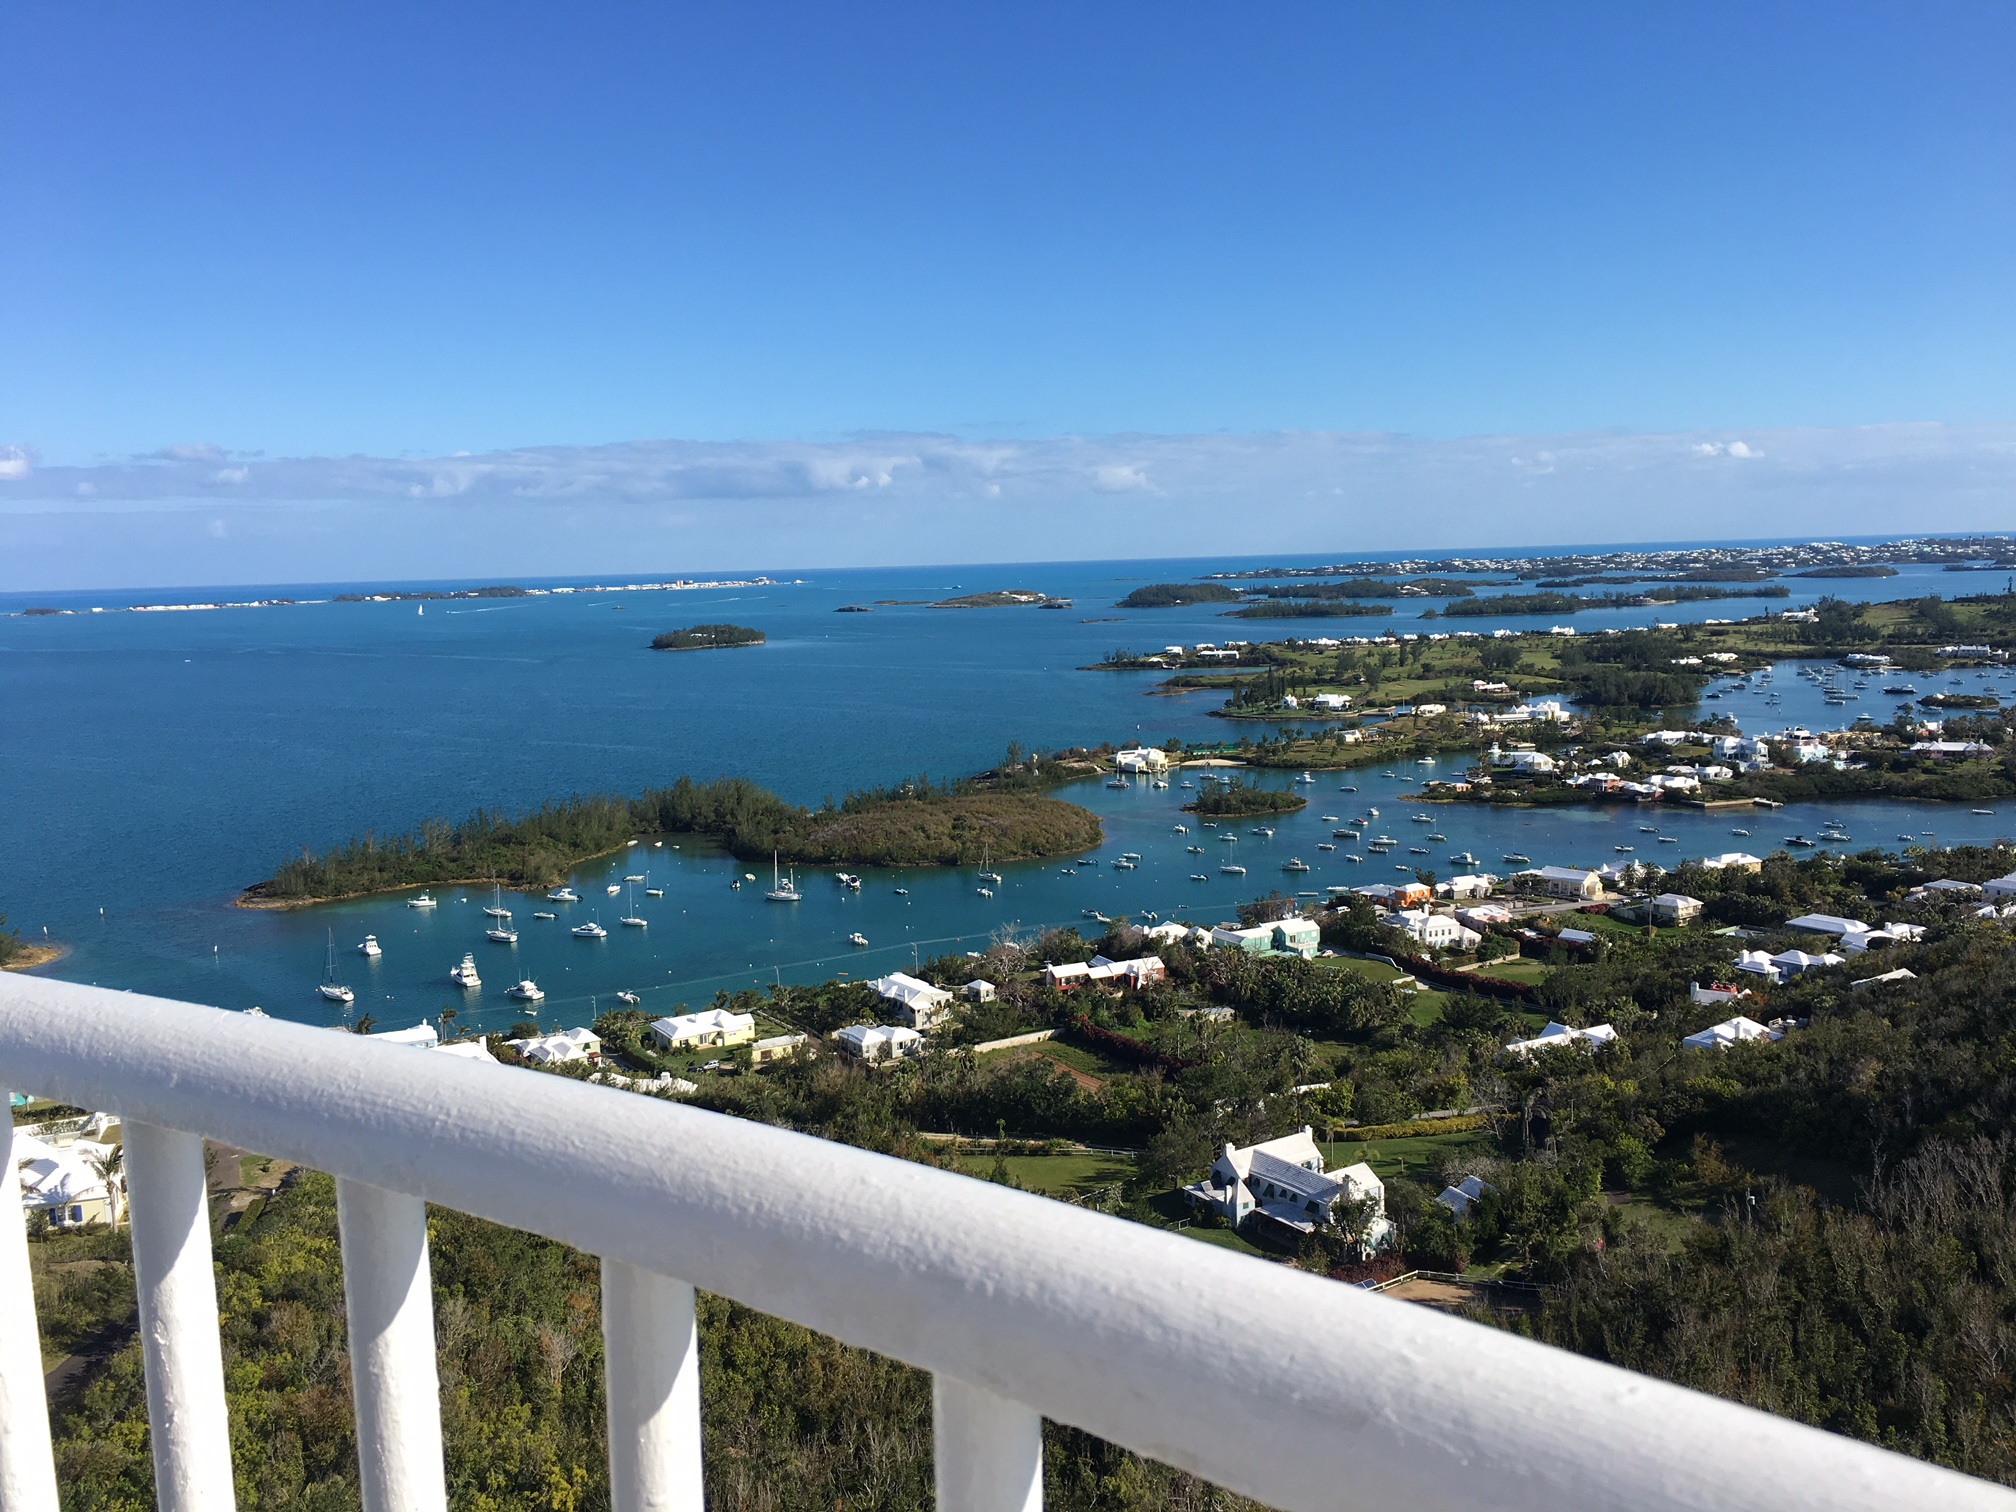 The view from Gibbs Hill Lighthouse